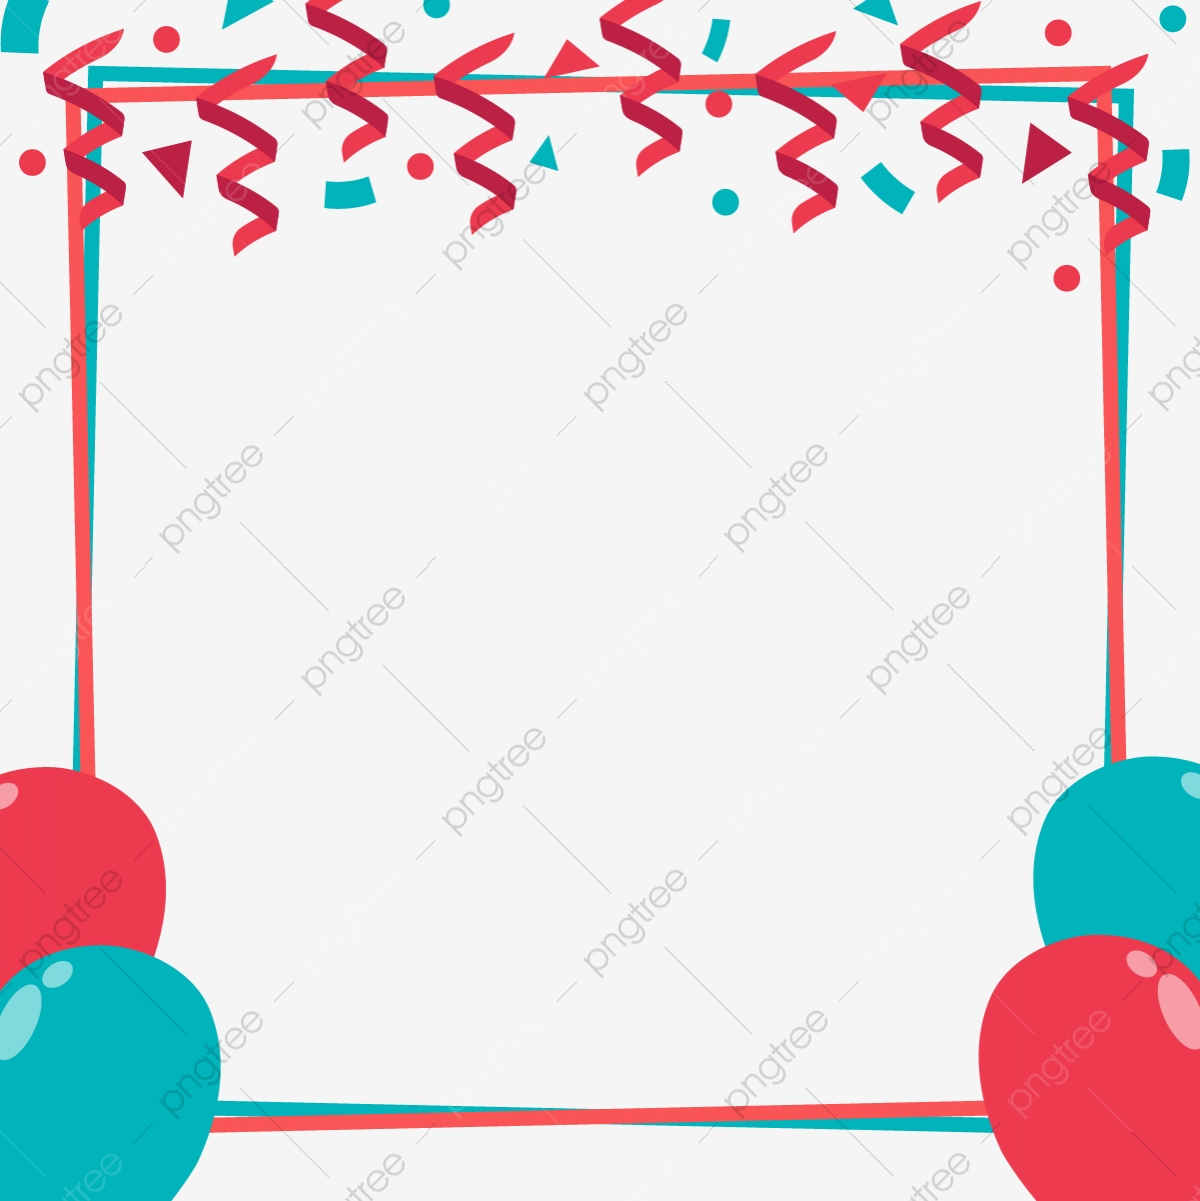 Red Blue Celebration Border With Balloons Blue Red Ballons Png And Vector With Transparent Background For Free Download